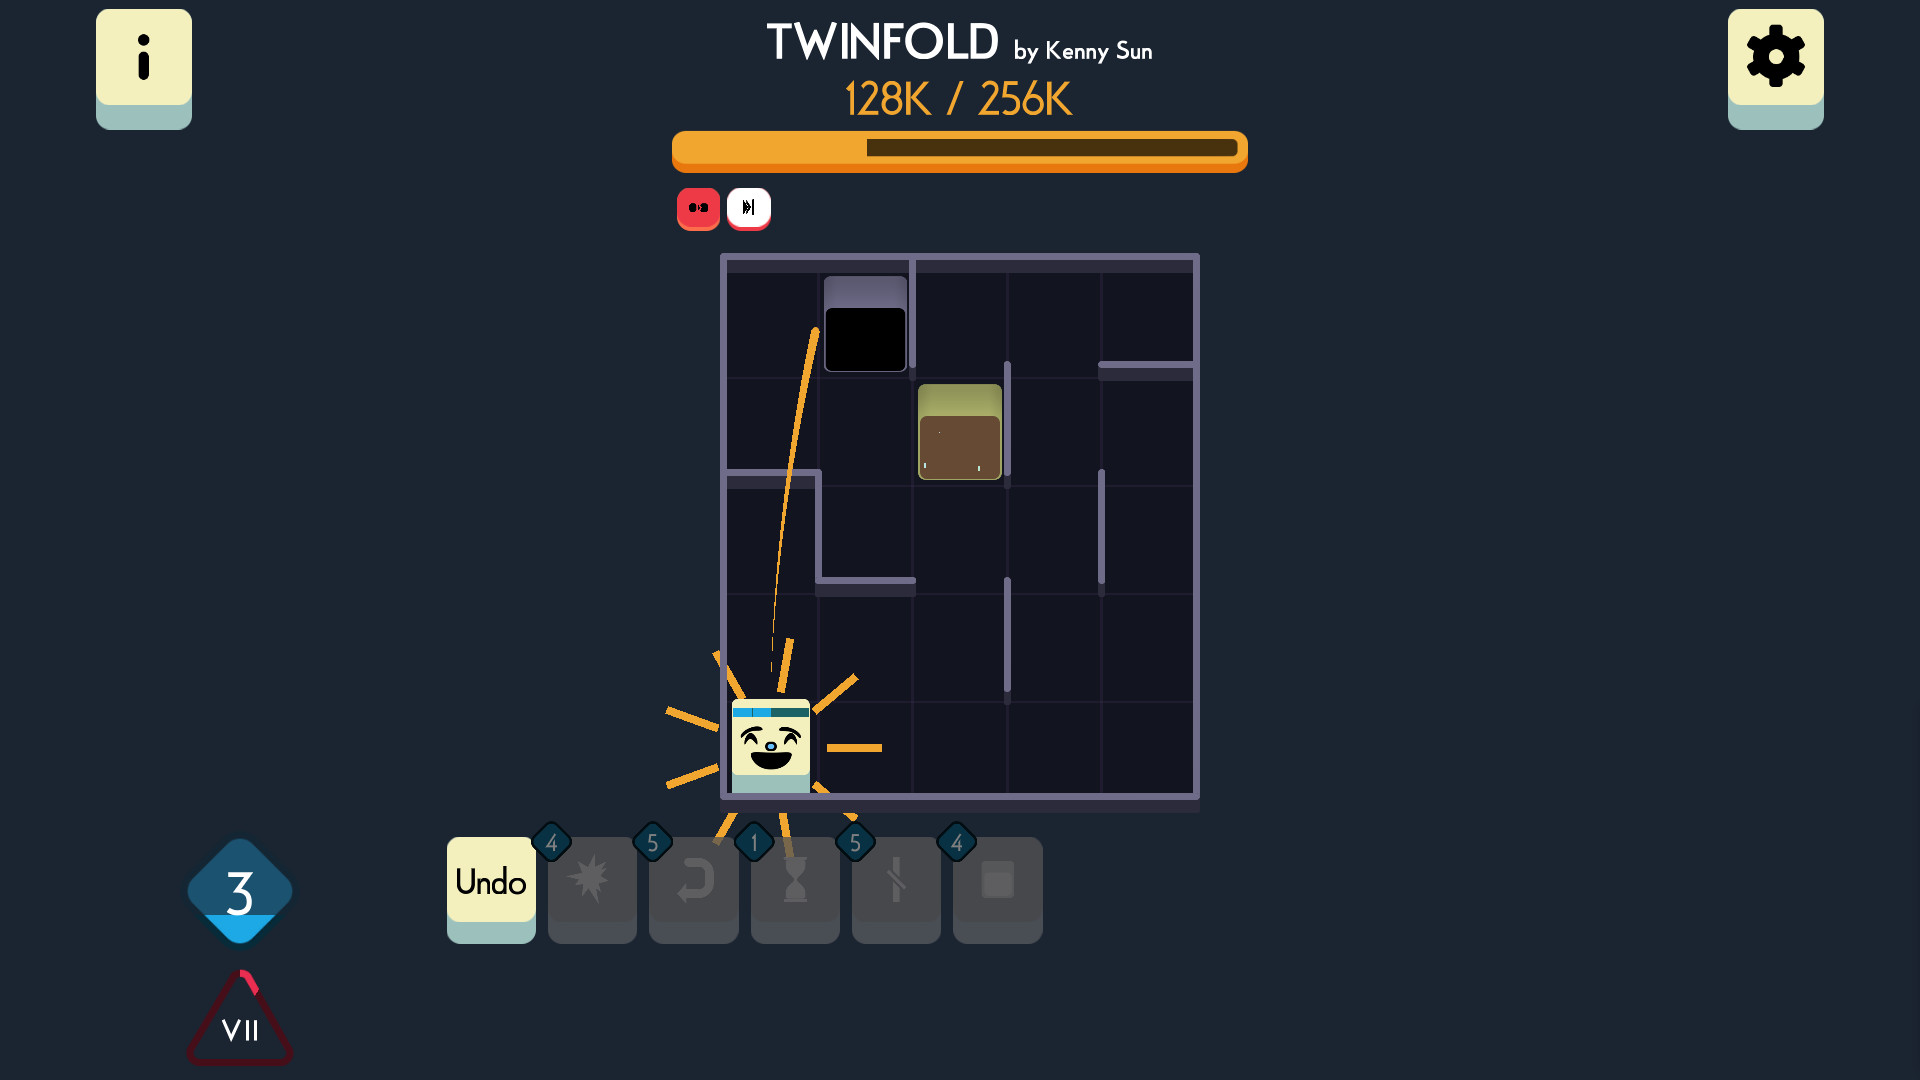 Twinfold screenshot